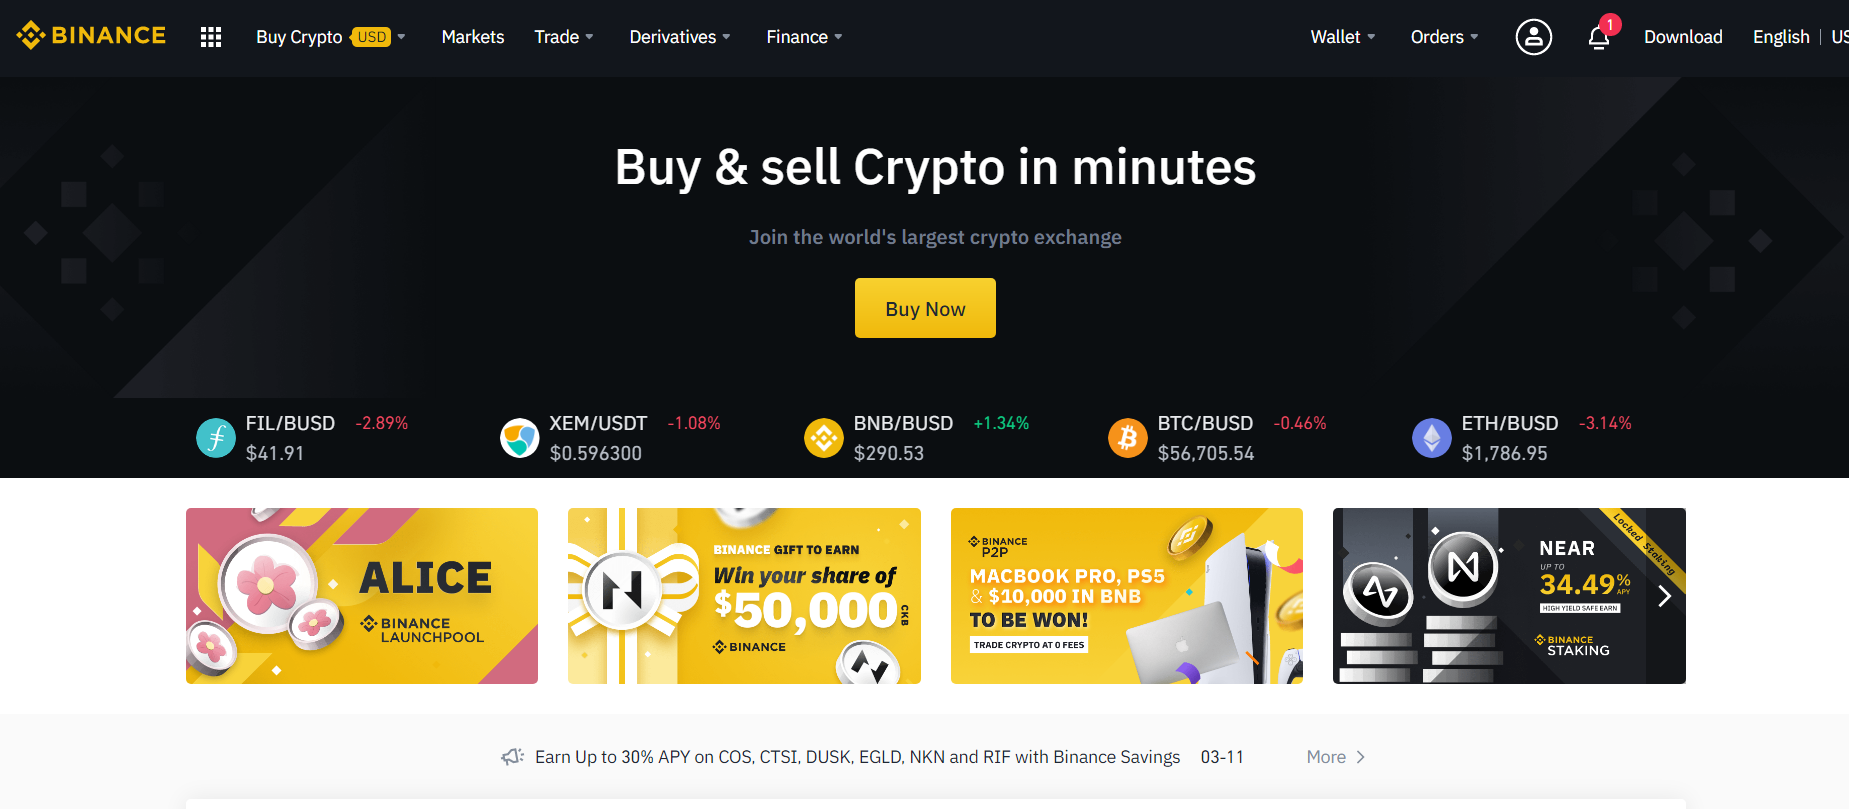 Cz Binance Funds Are Safe